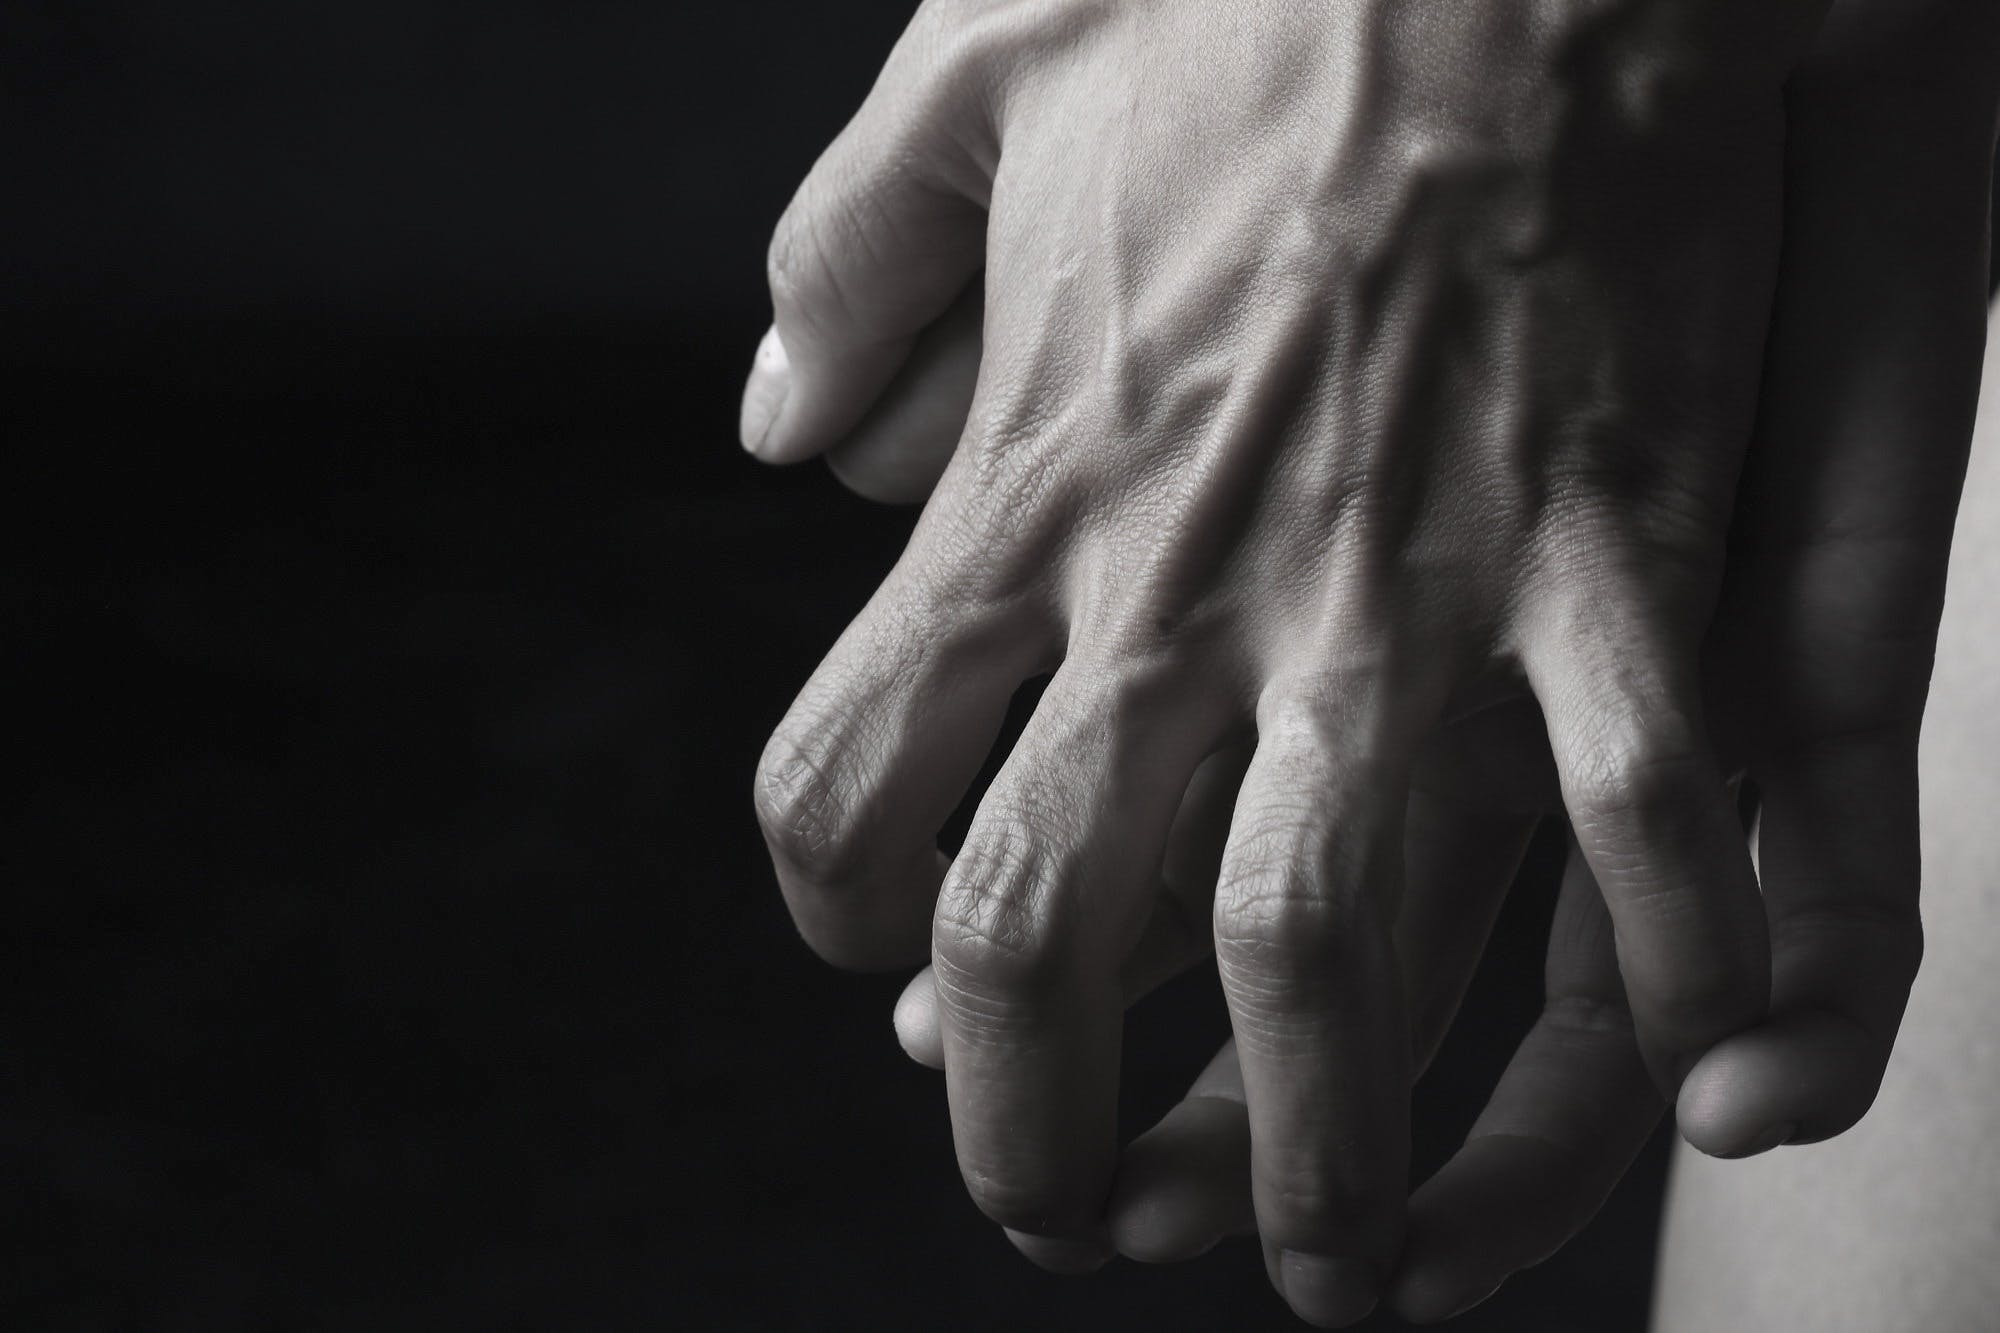 Two Hands About to Hold Grayscale Photography